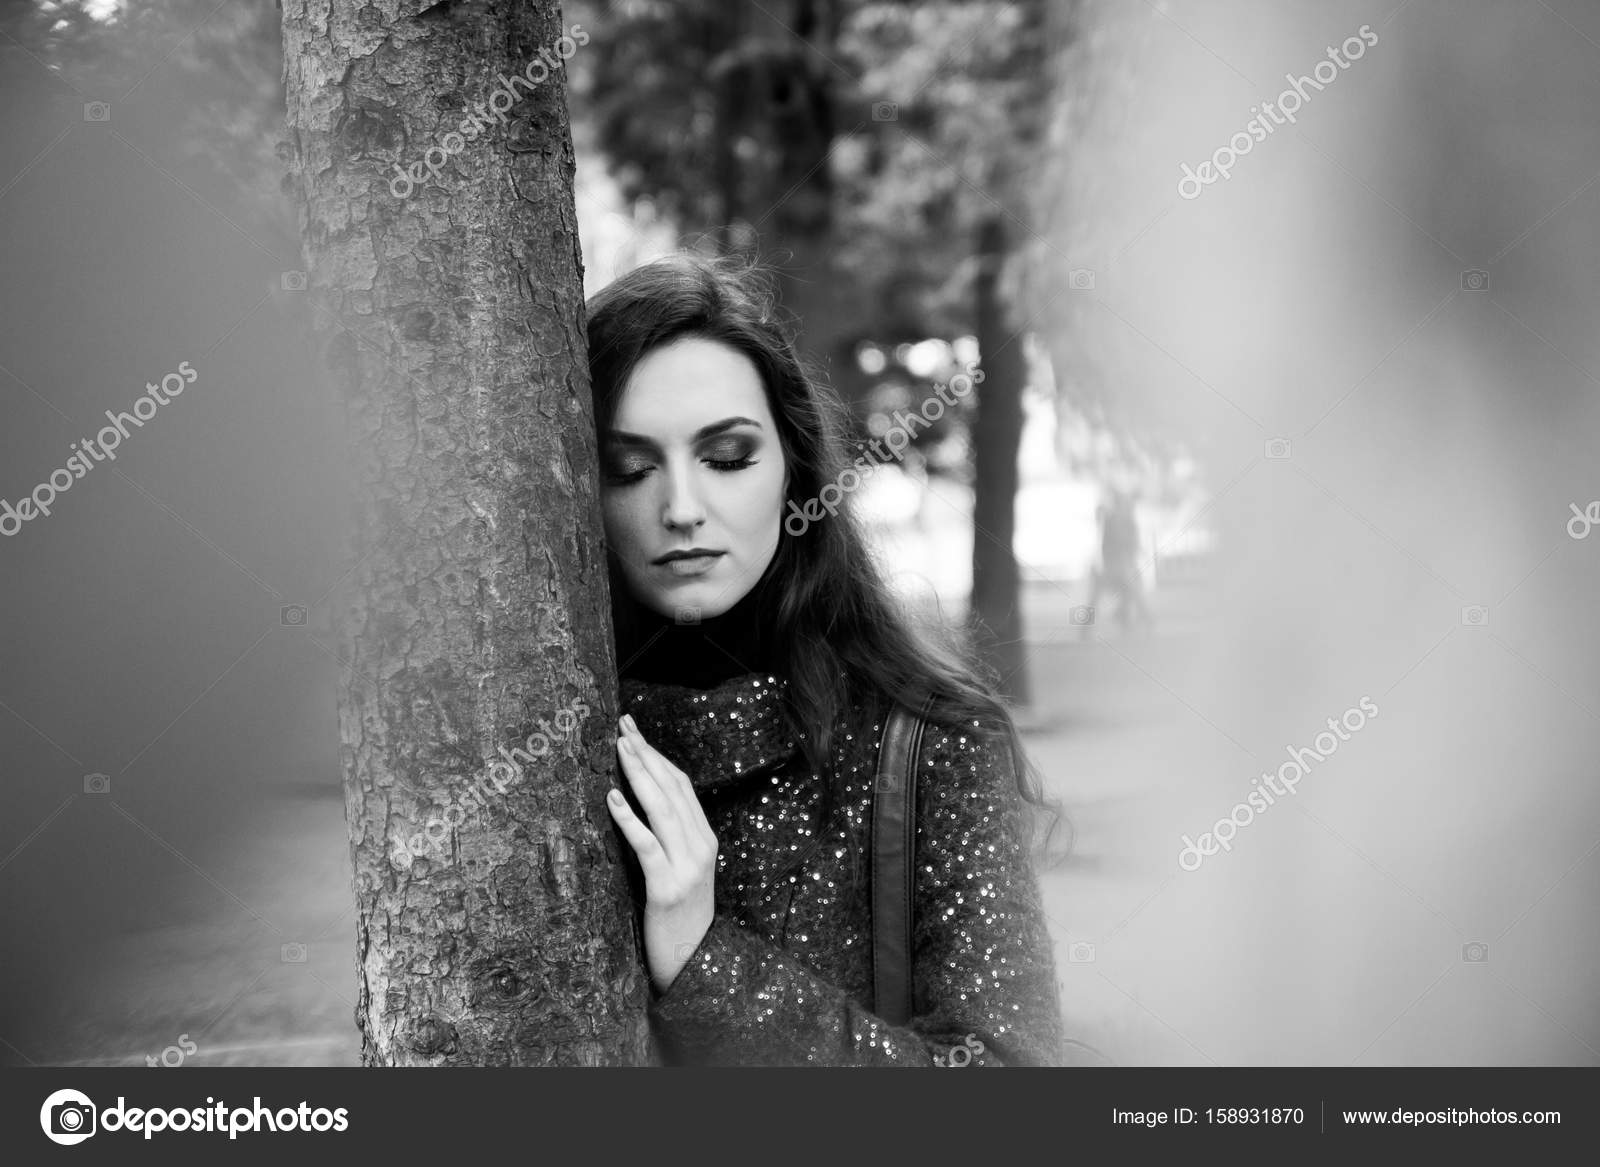 Black and white portrait of attractive woman with sensual lips and professional makeup outdoors stock image